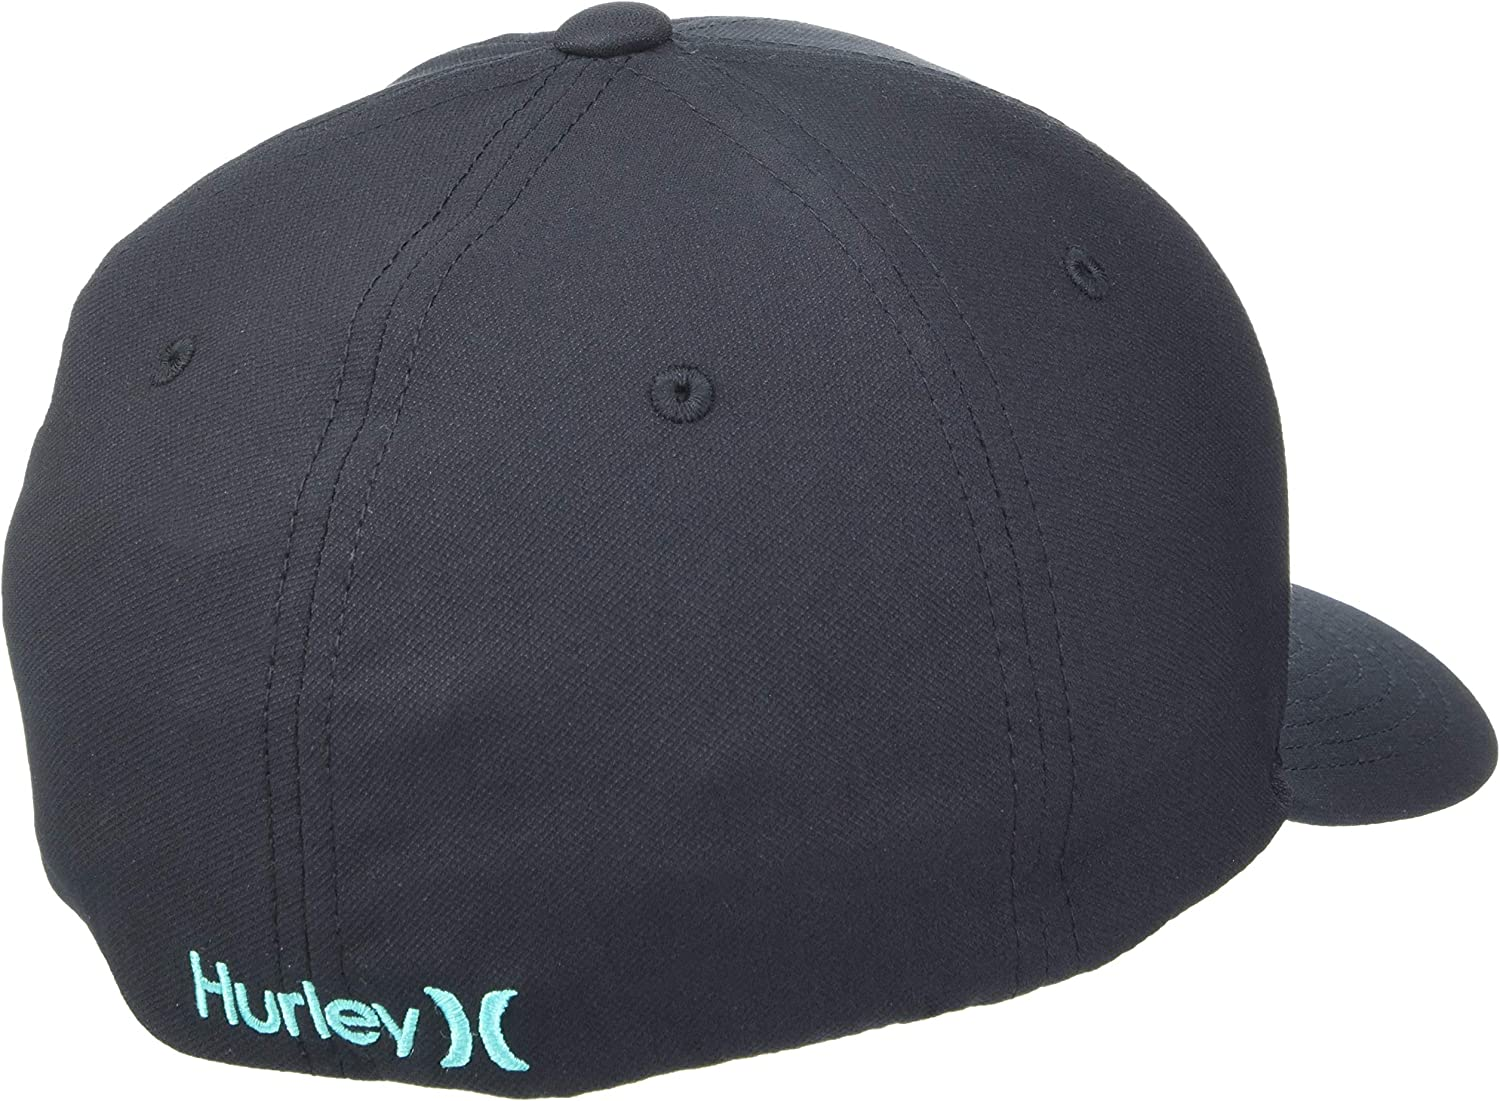 Hurley Mens M Dri-fit One/&only 2.0 Hat Cap